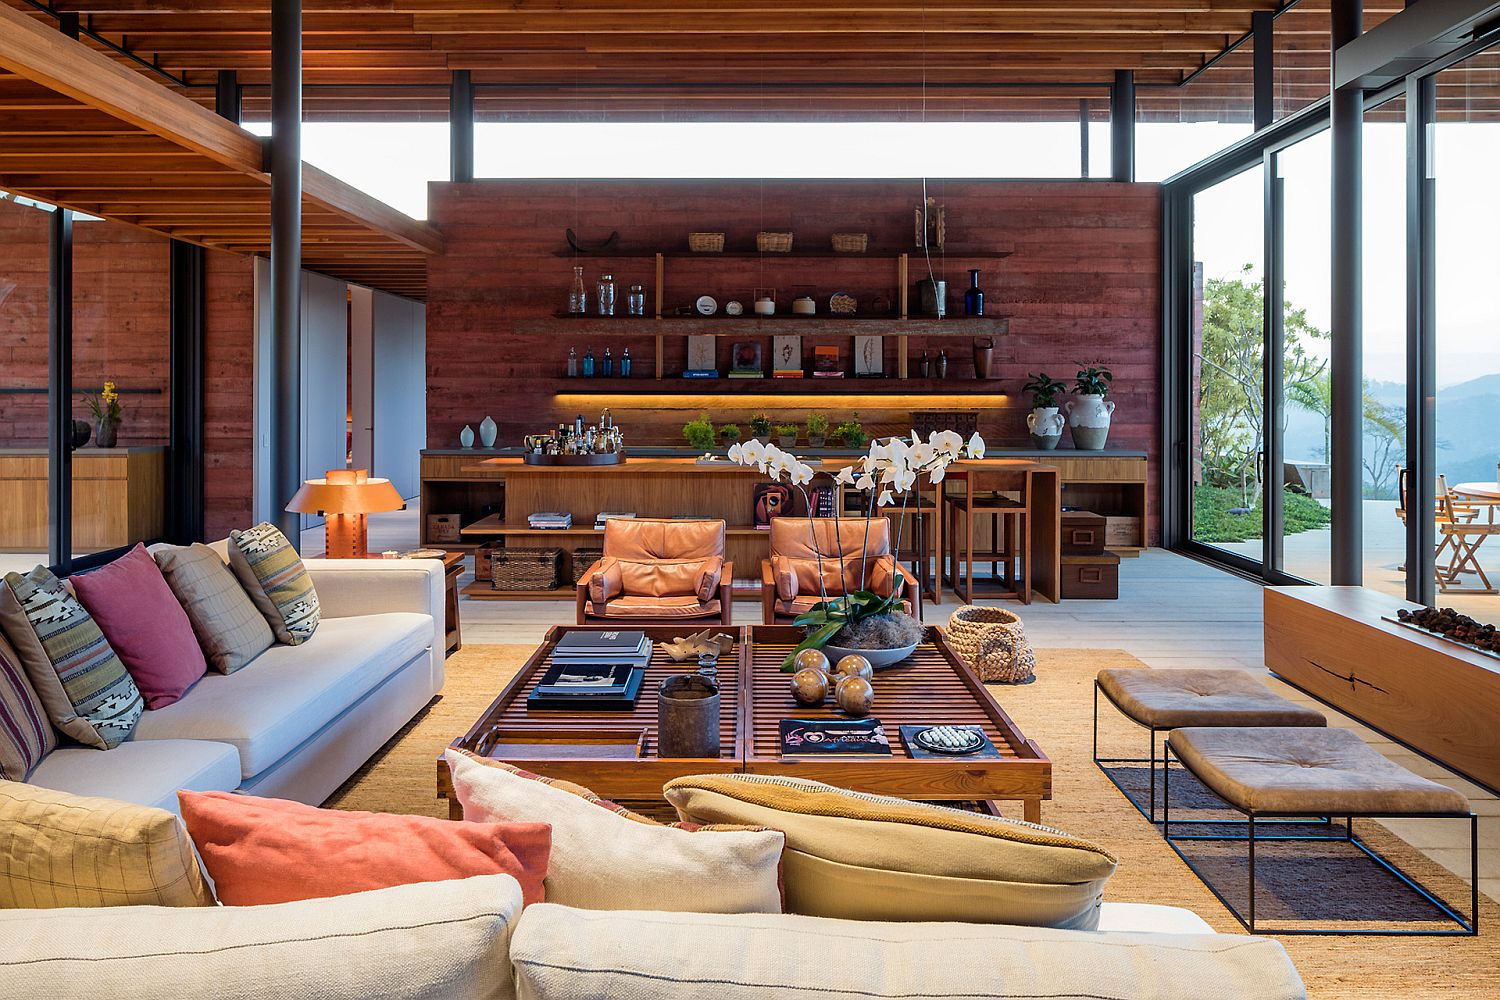 Open interior of the Brazilian home with glass and pigmented concrete walls